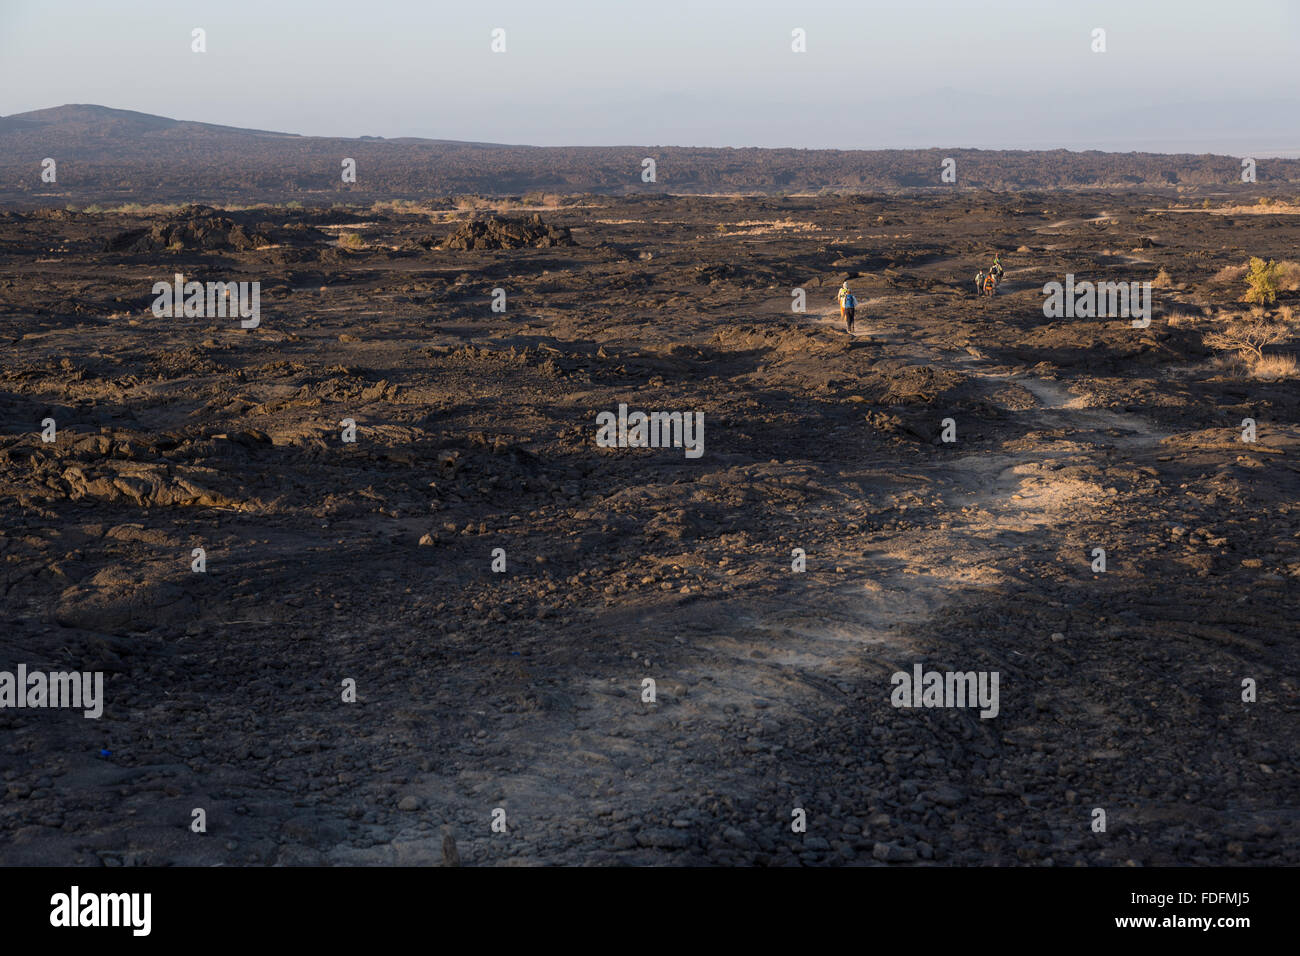 People follow a faint path through the lava fields around Erta Ale volcano in Ethiopia. Descending the volcano in - Stock Image